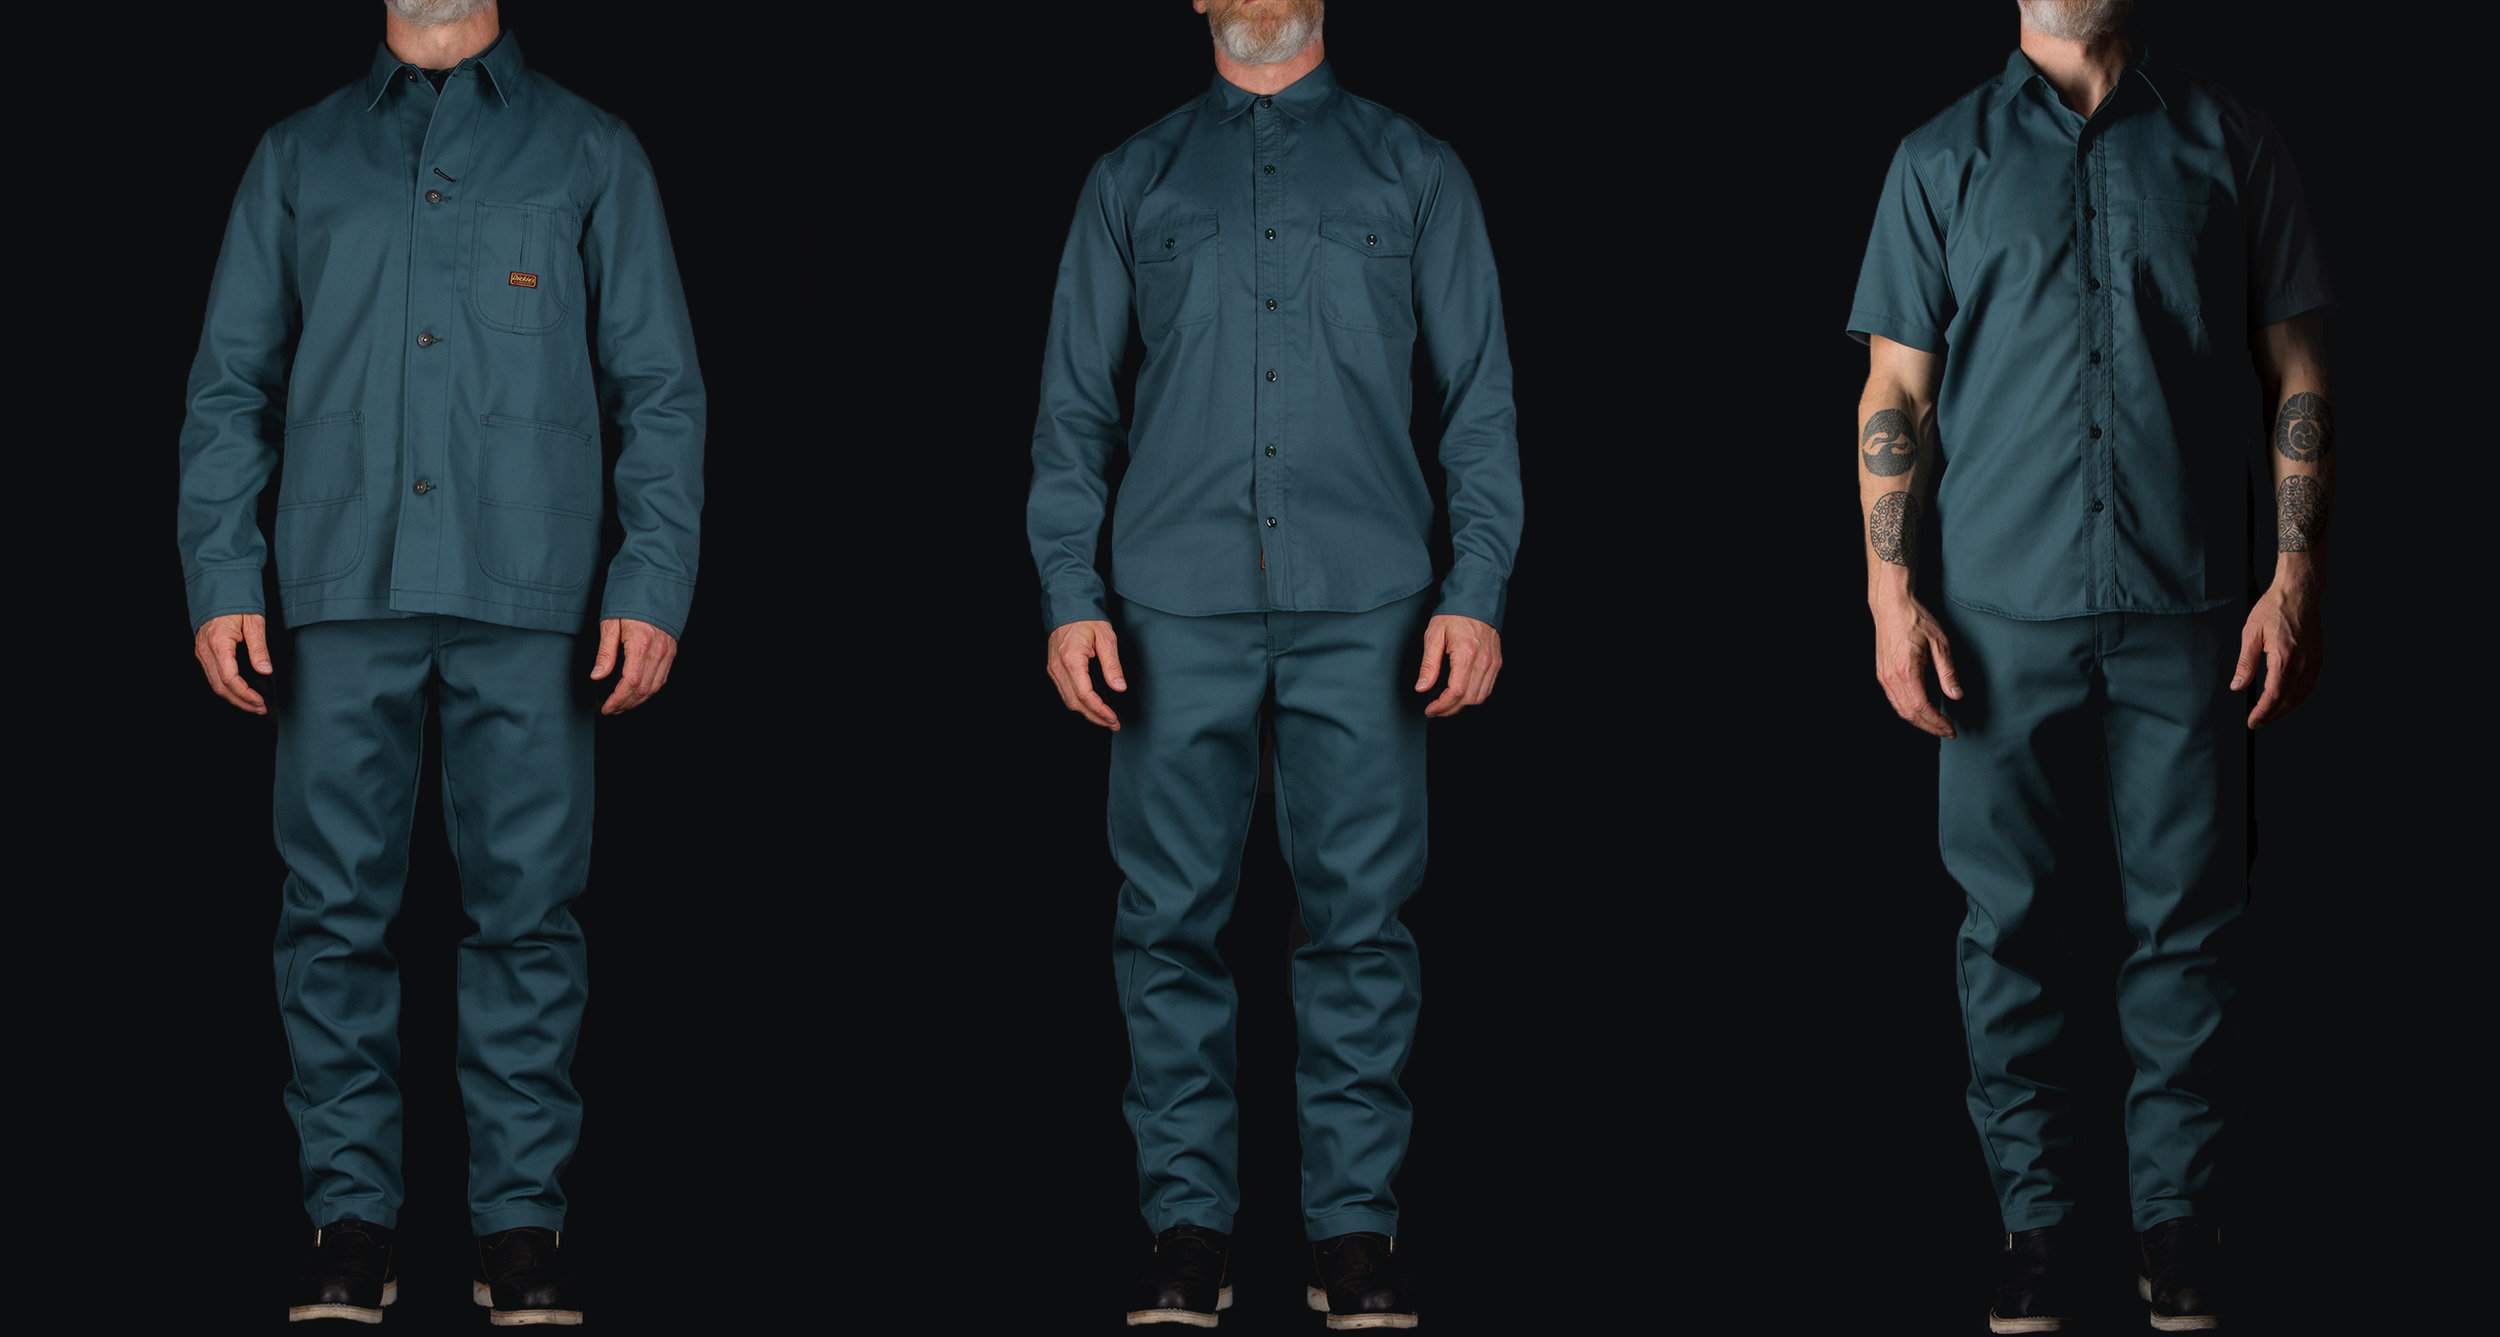 Black Bear Brand x Dickies 1922 Collaboration (Lincoln Green)